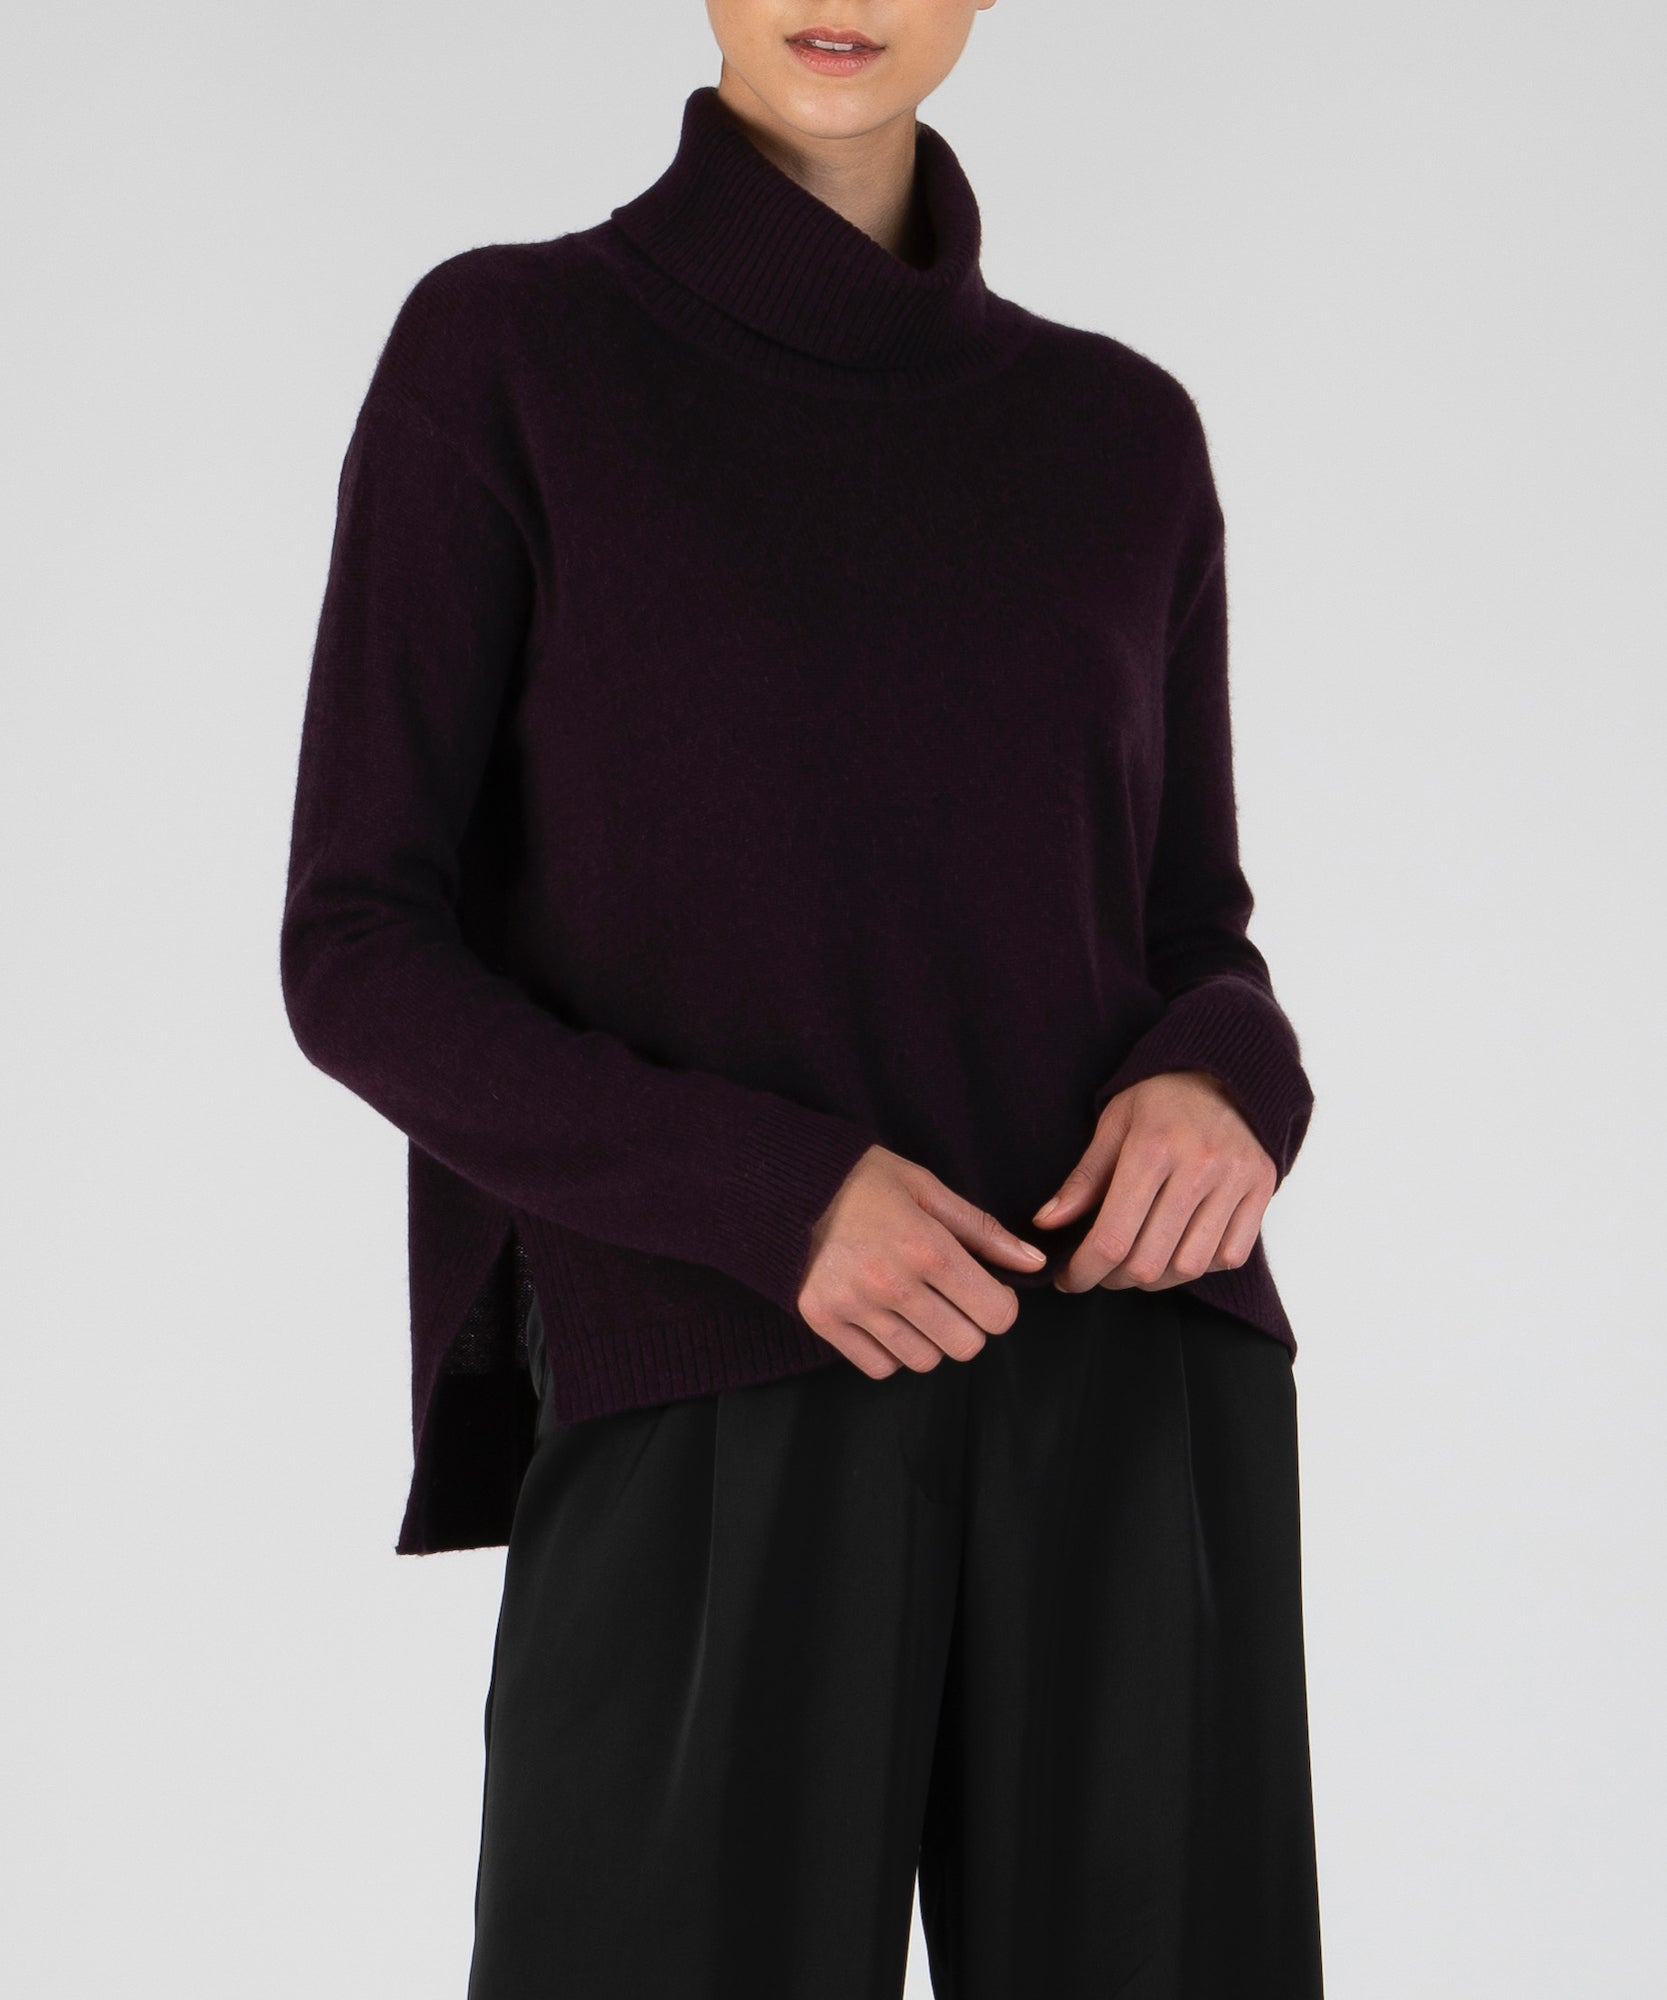 Dark Maroon Cashmere Wide Turtleneck Sweater - Women's Luxe Sweater by ATM Anthony Thomas Melillo